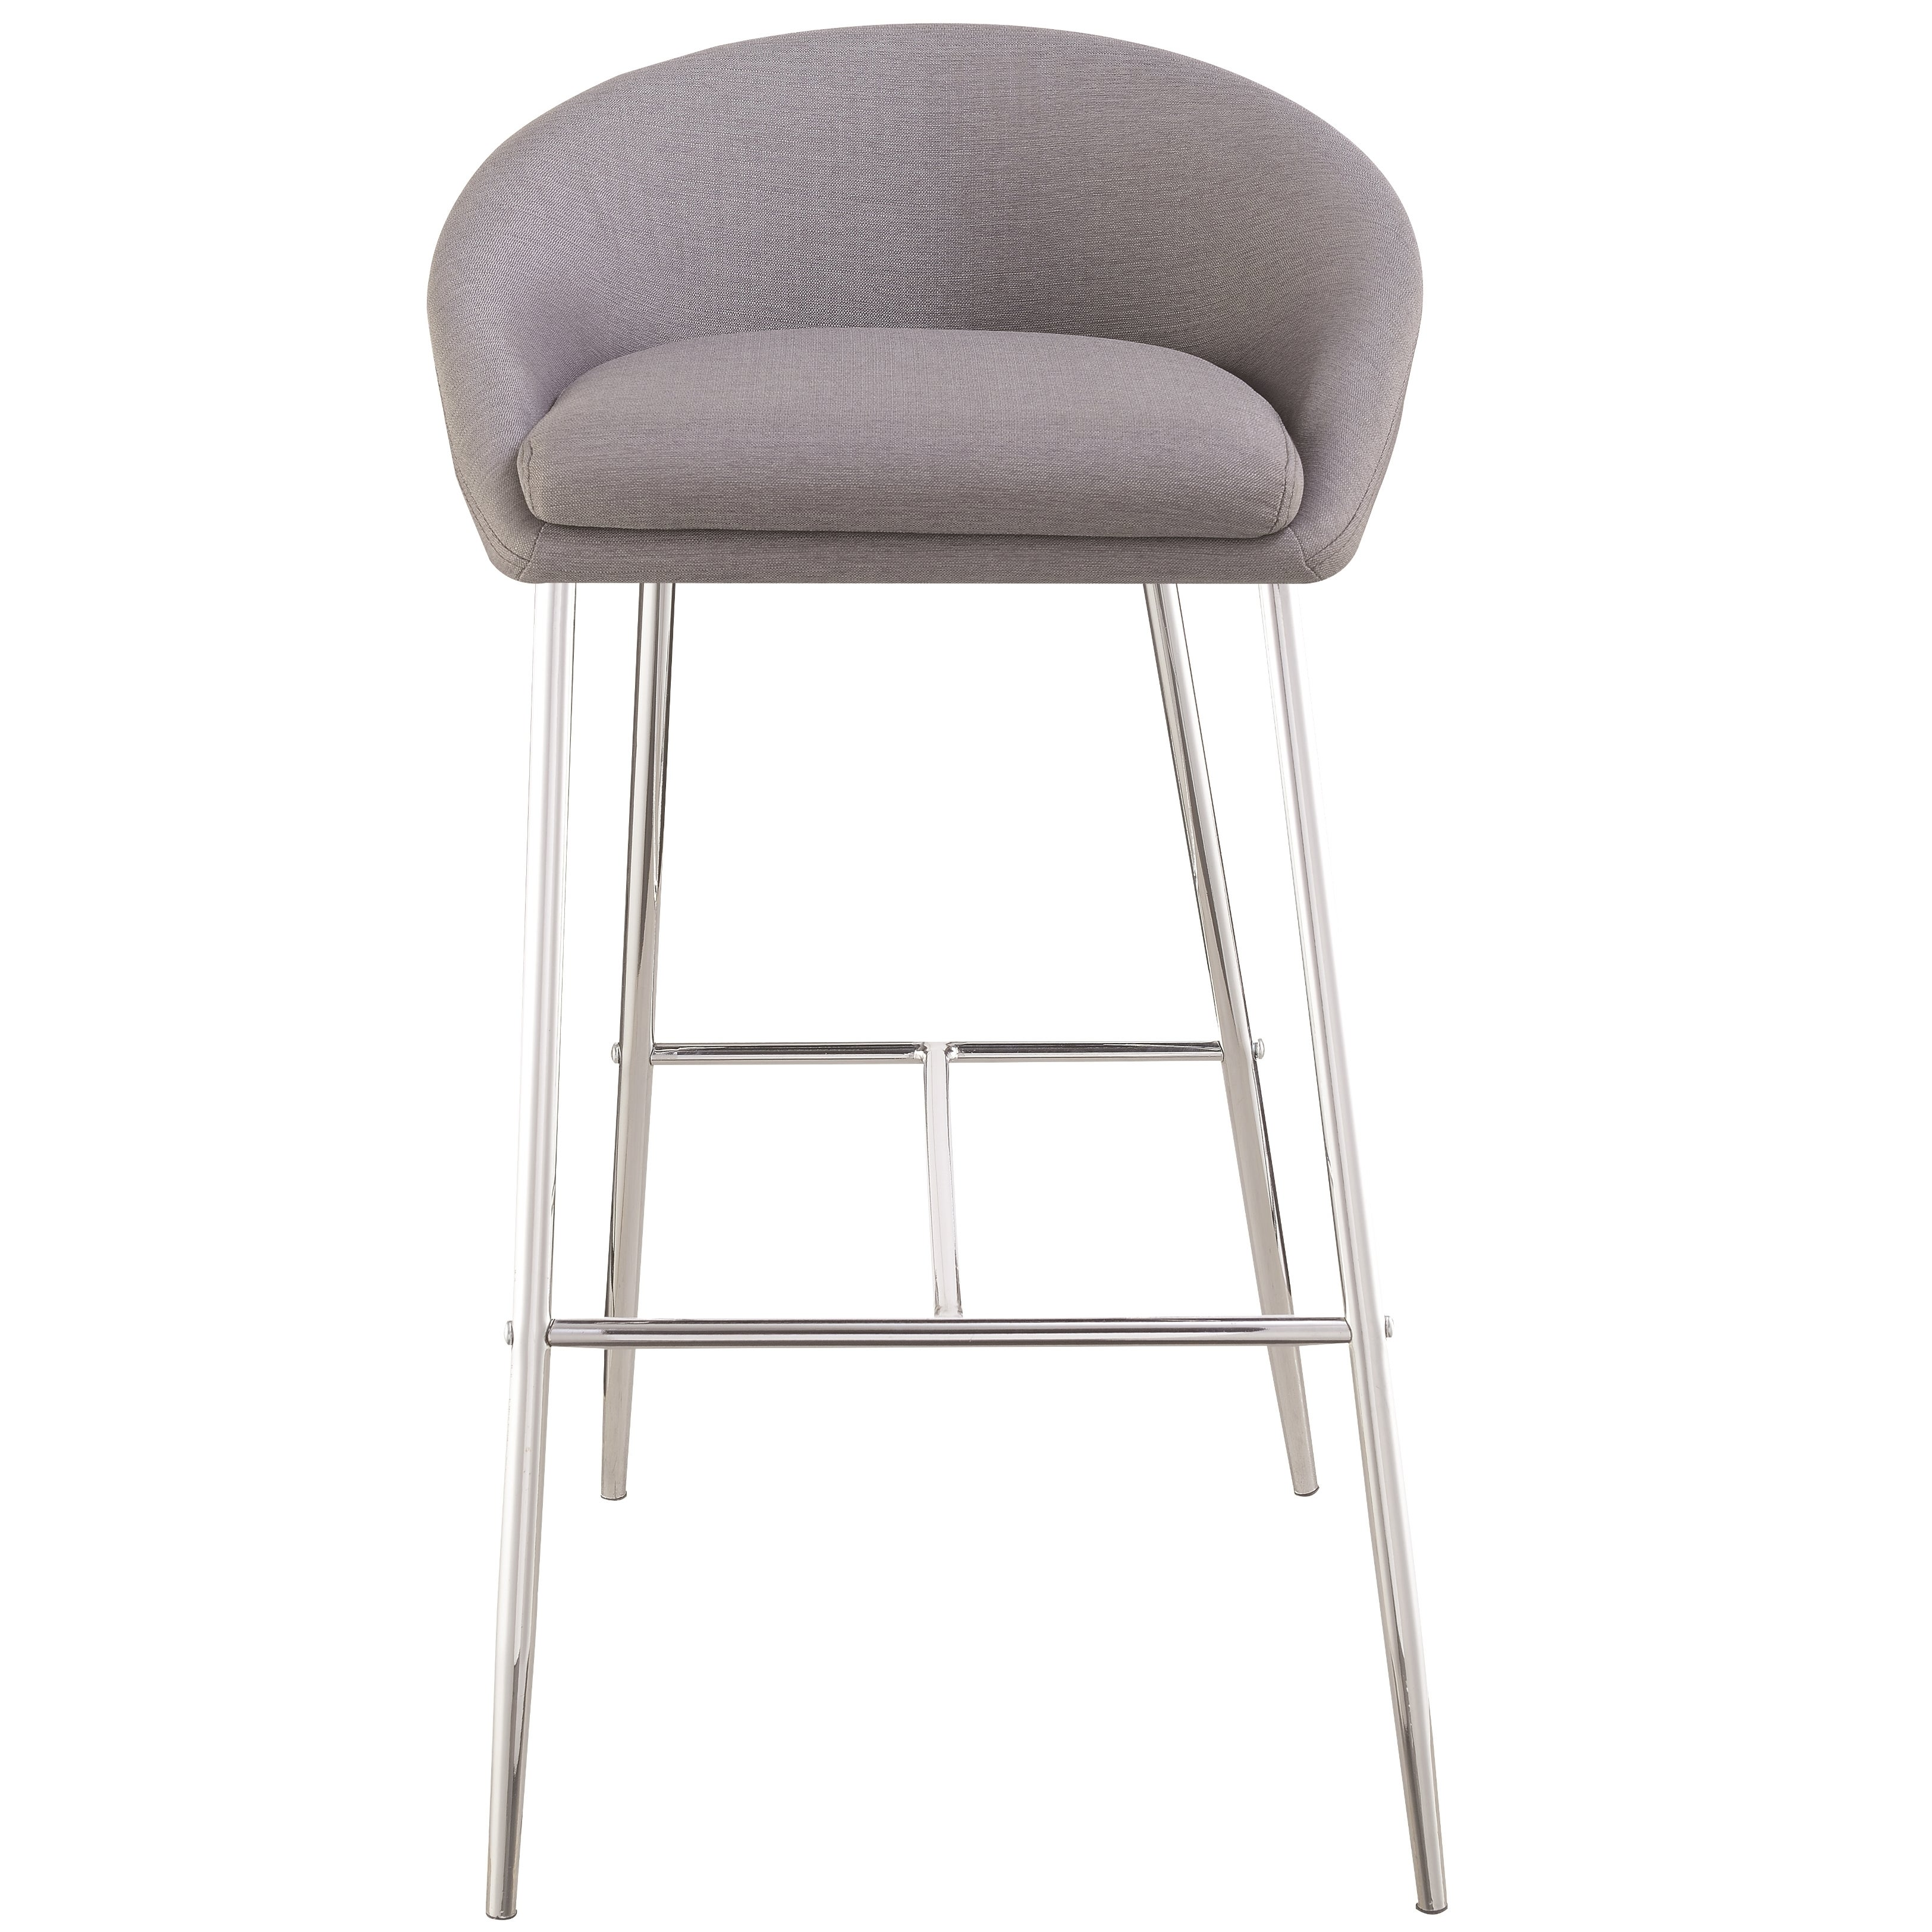 Captivating Modern Design Grey Woven Fabric Bar Stools With Sleek Chrome Base (Set Of  2)   Free Shipping Today   Overstock.com   23277928 Nice Look